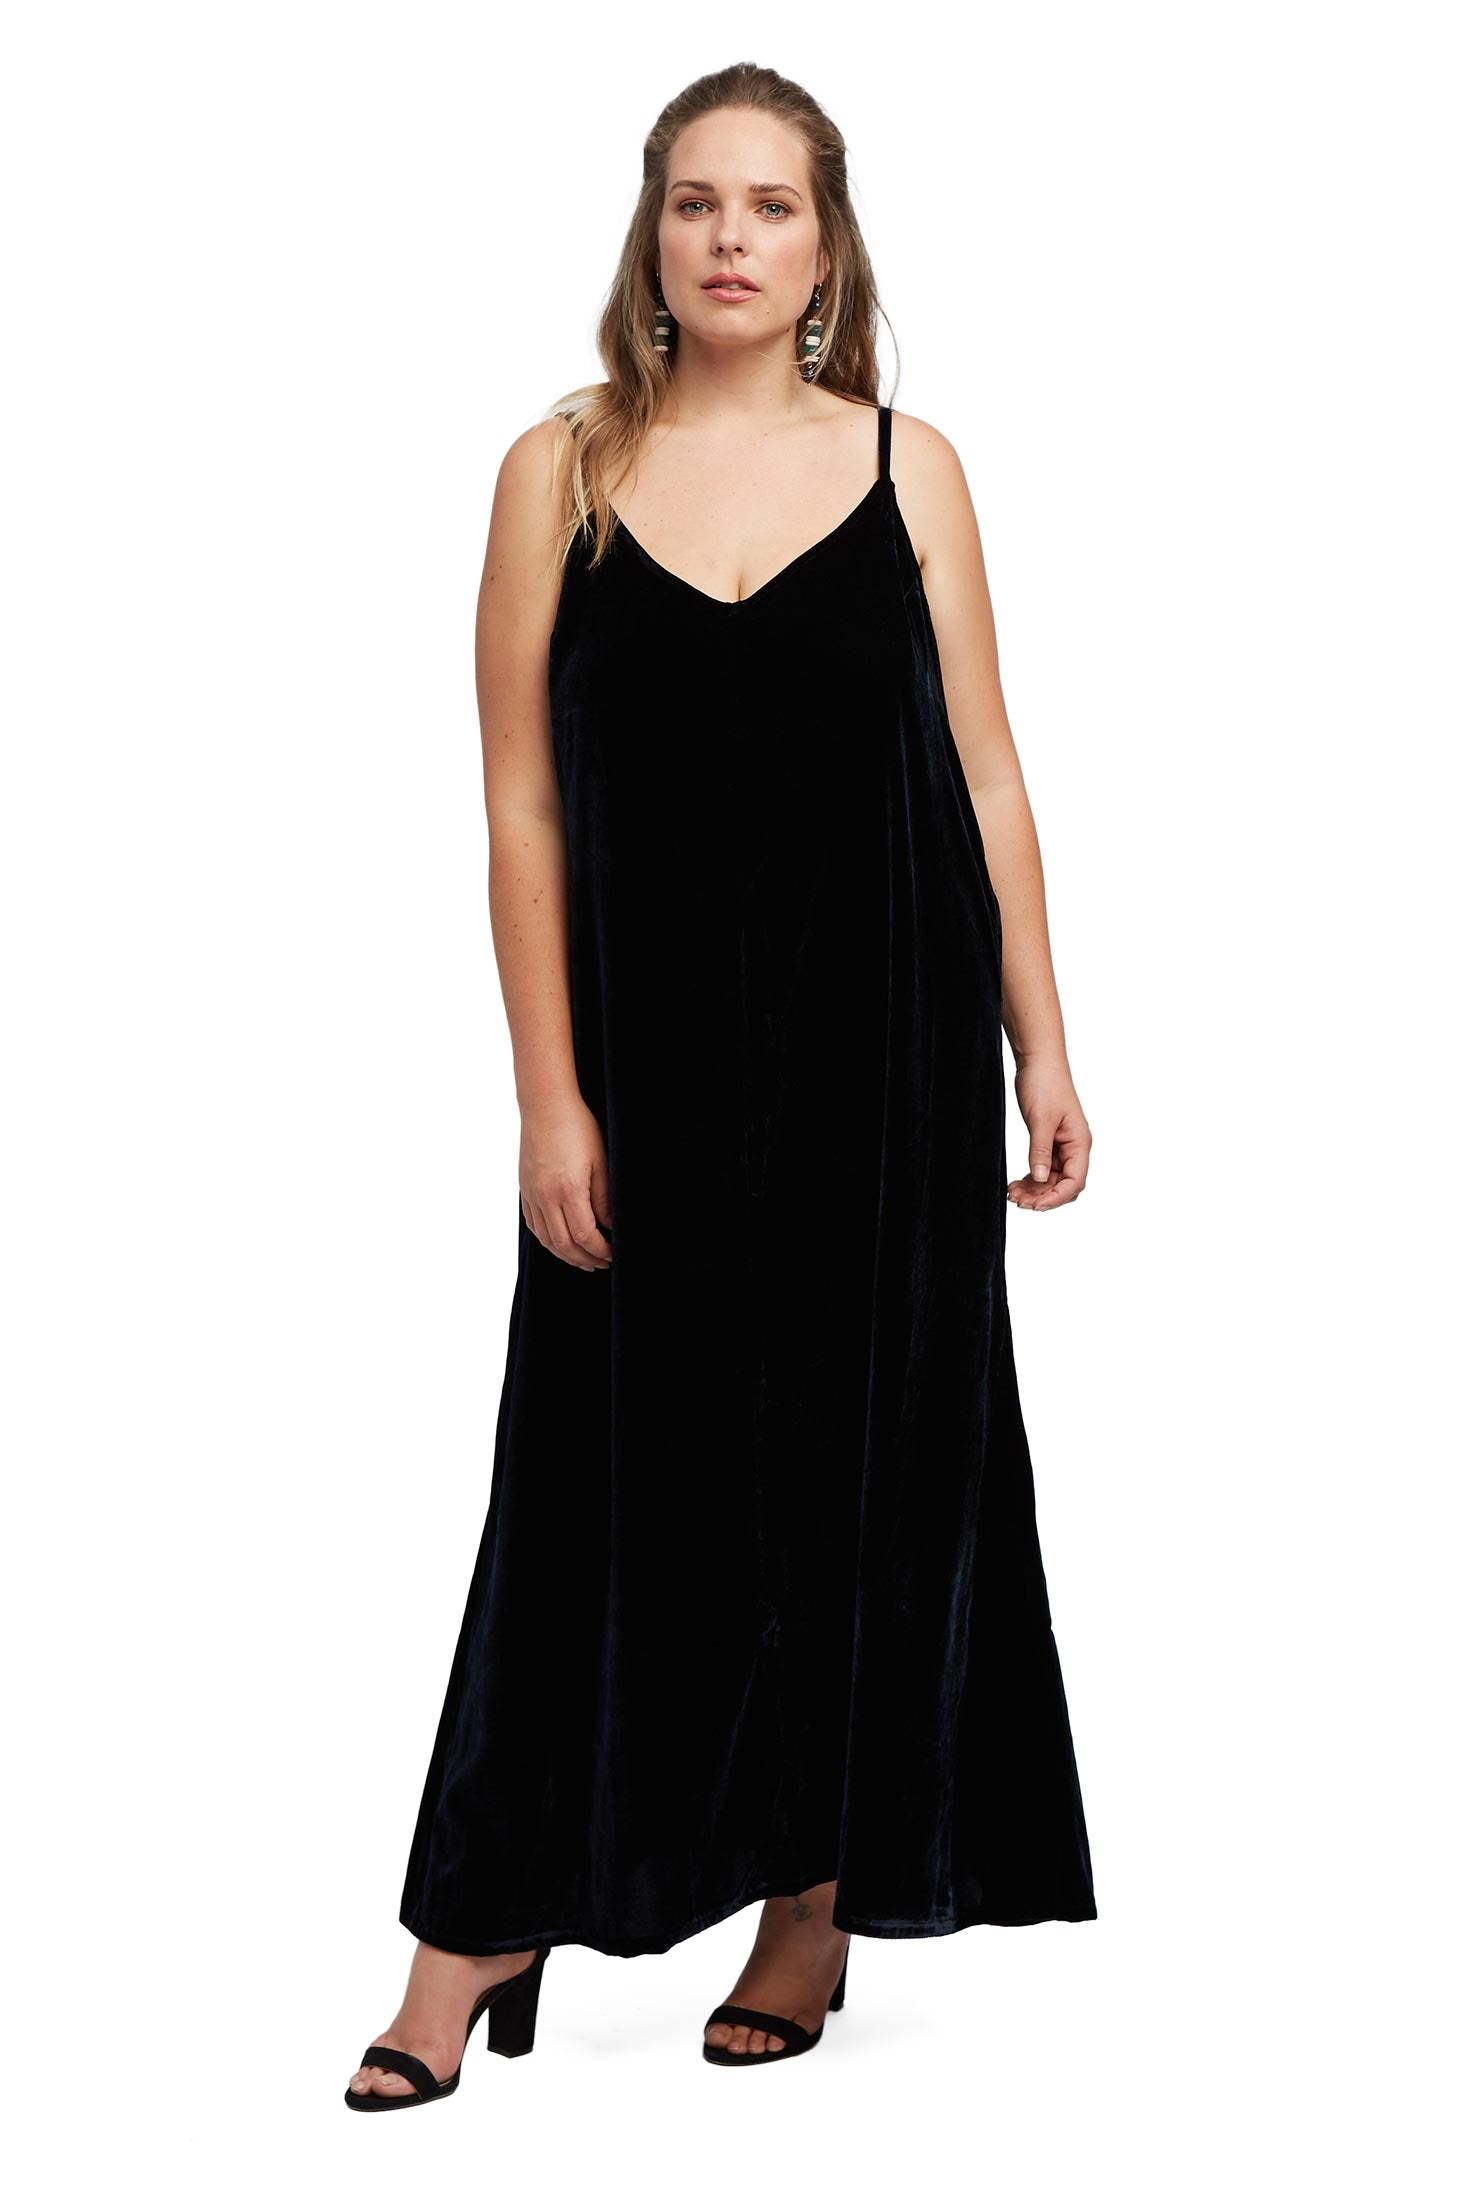 Velvet Slip Dress - Night Velvet, Plus Size